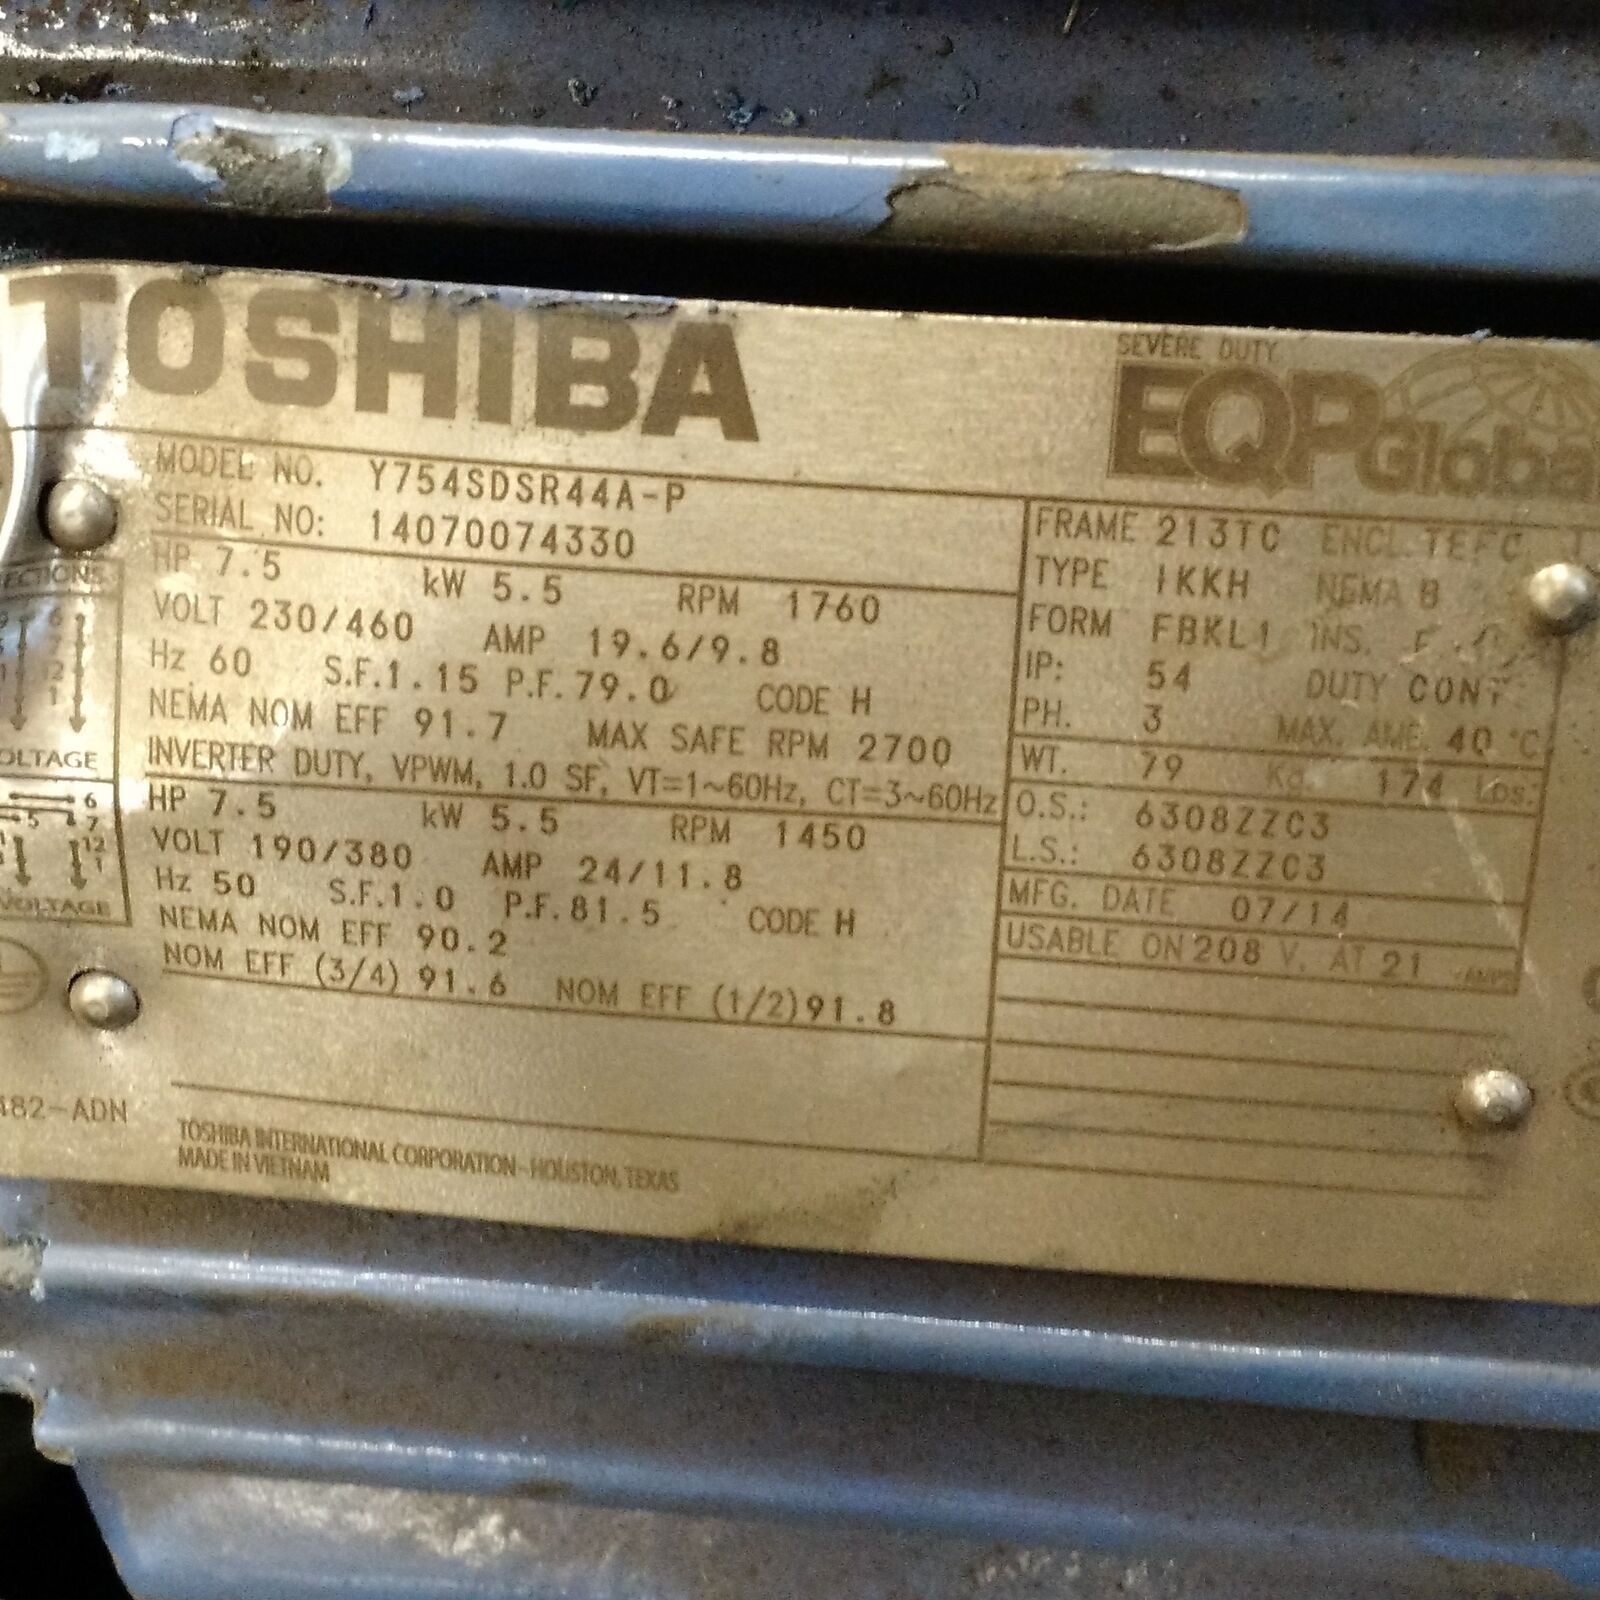 Toshiba Type IKKH Motor Y752XDSB42A-P 7.5HP 3500RPM 460V 9A 213TC Frame Used